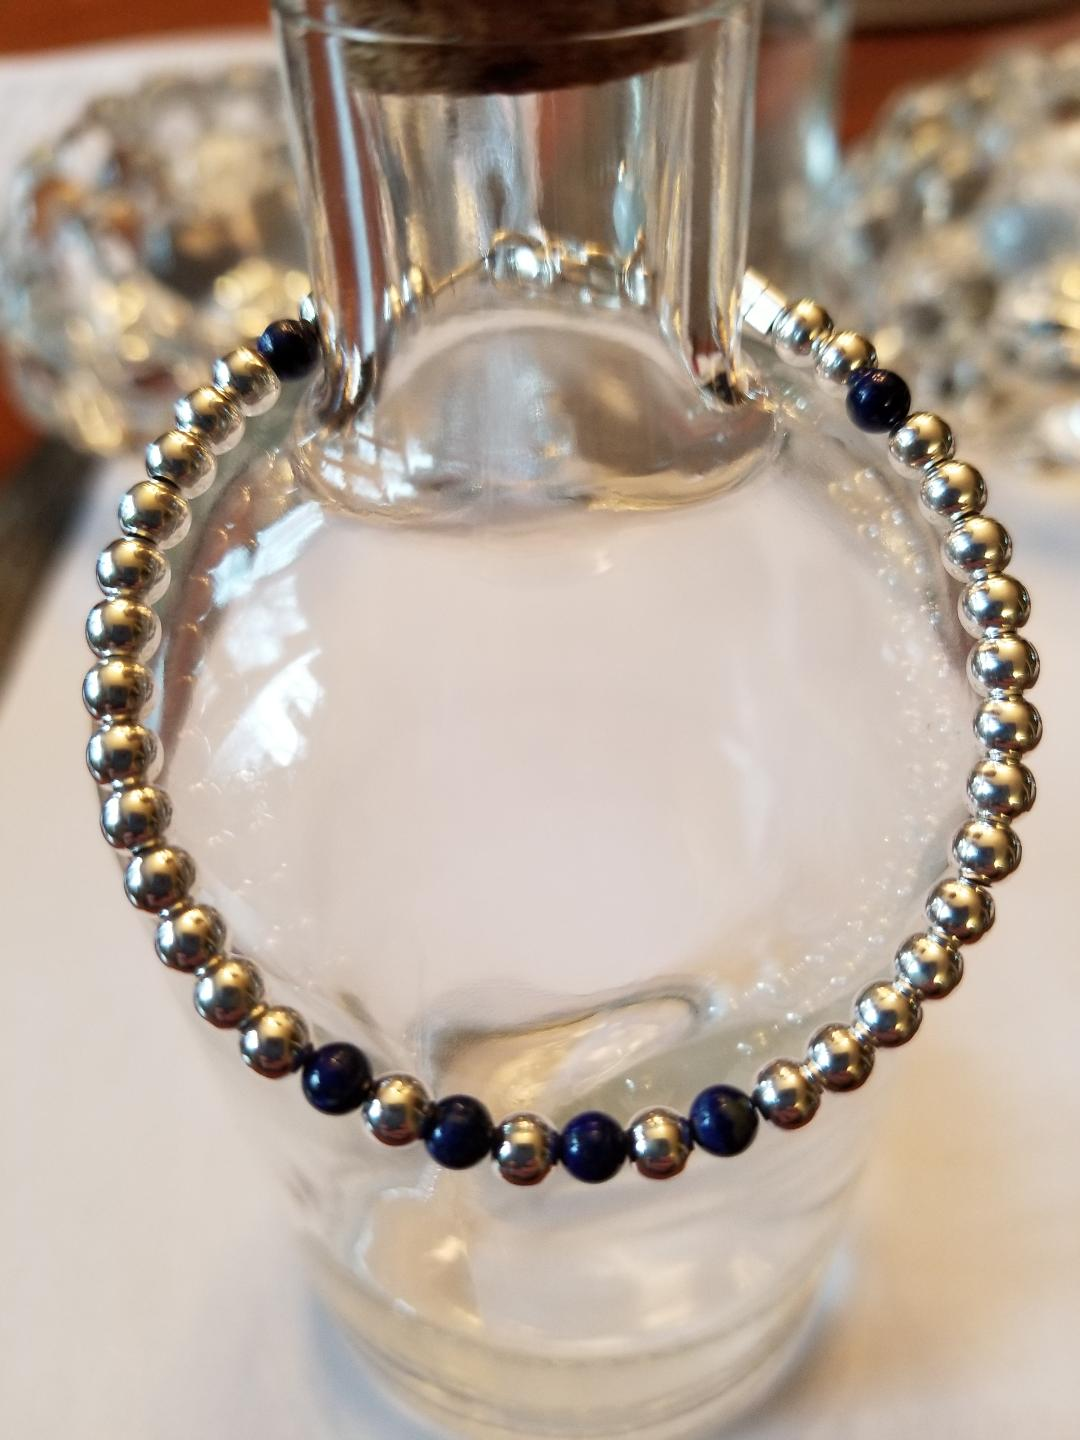 SWEET GEMS STERLING SILVER BRACELET WITH LAPIS LAZULI